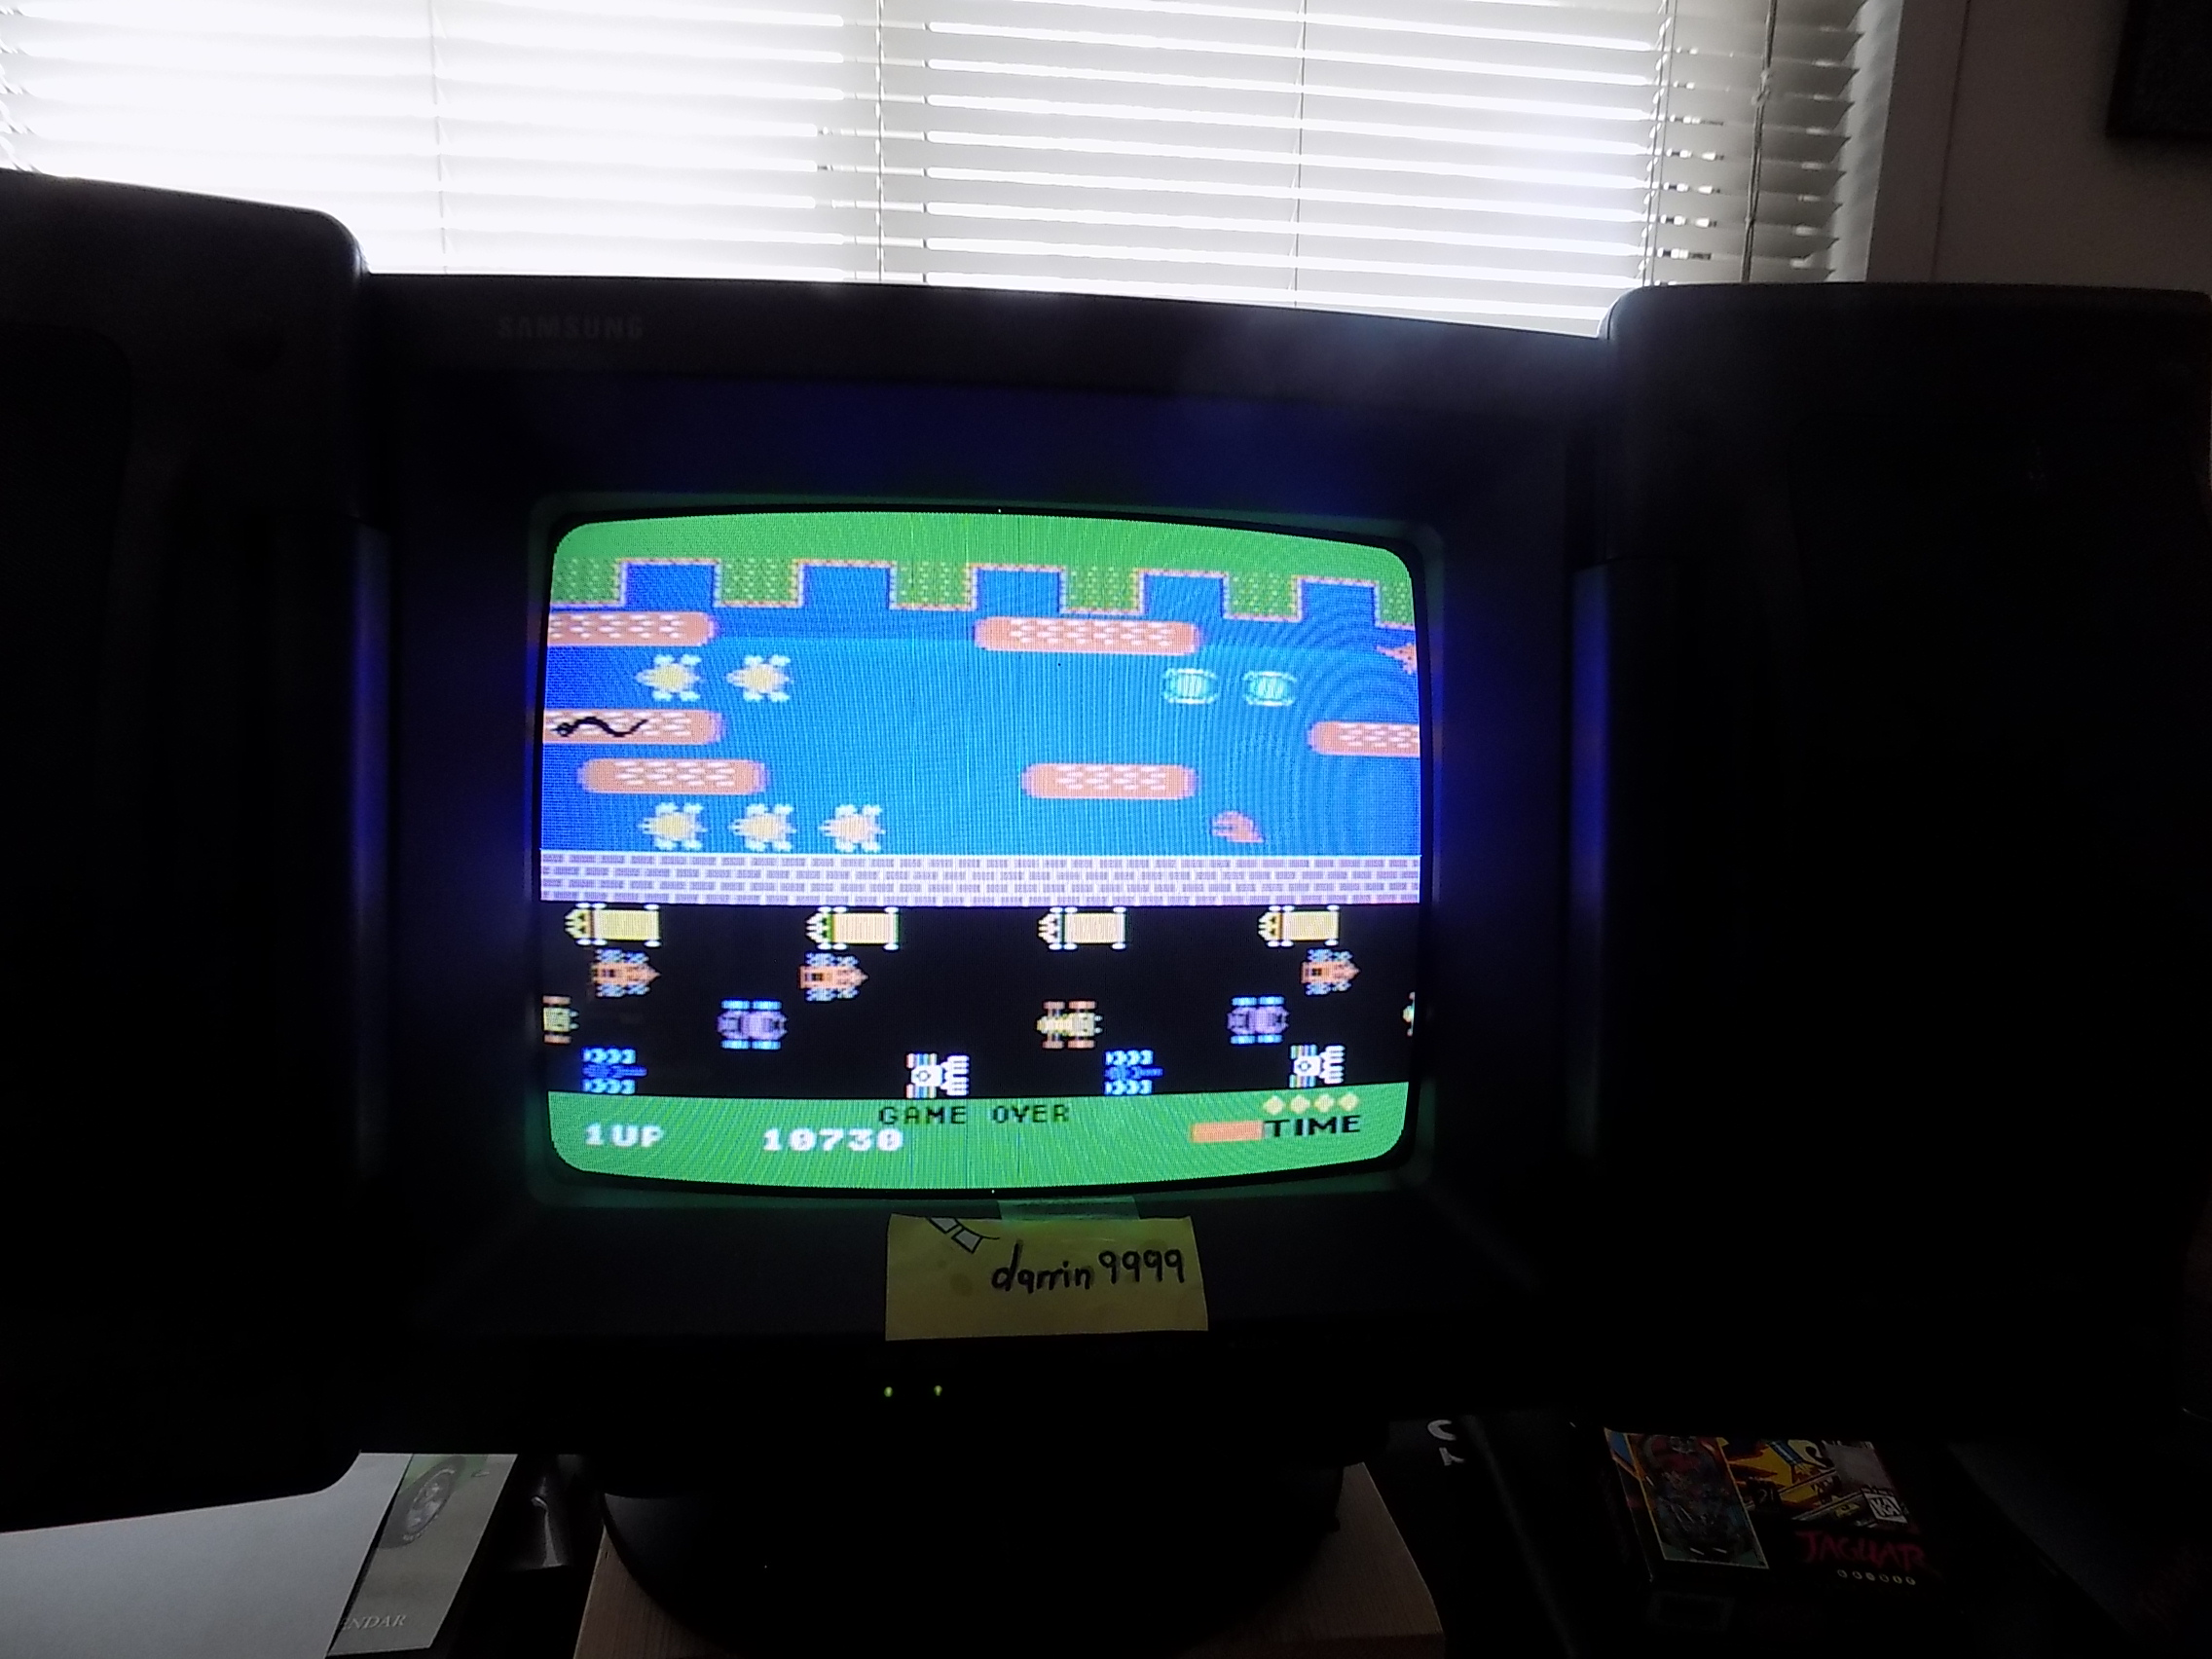 darrin9999: Frogger (Colecovision) 10,730 points on 2019-03-16 12:41:16